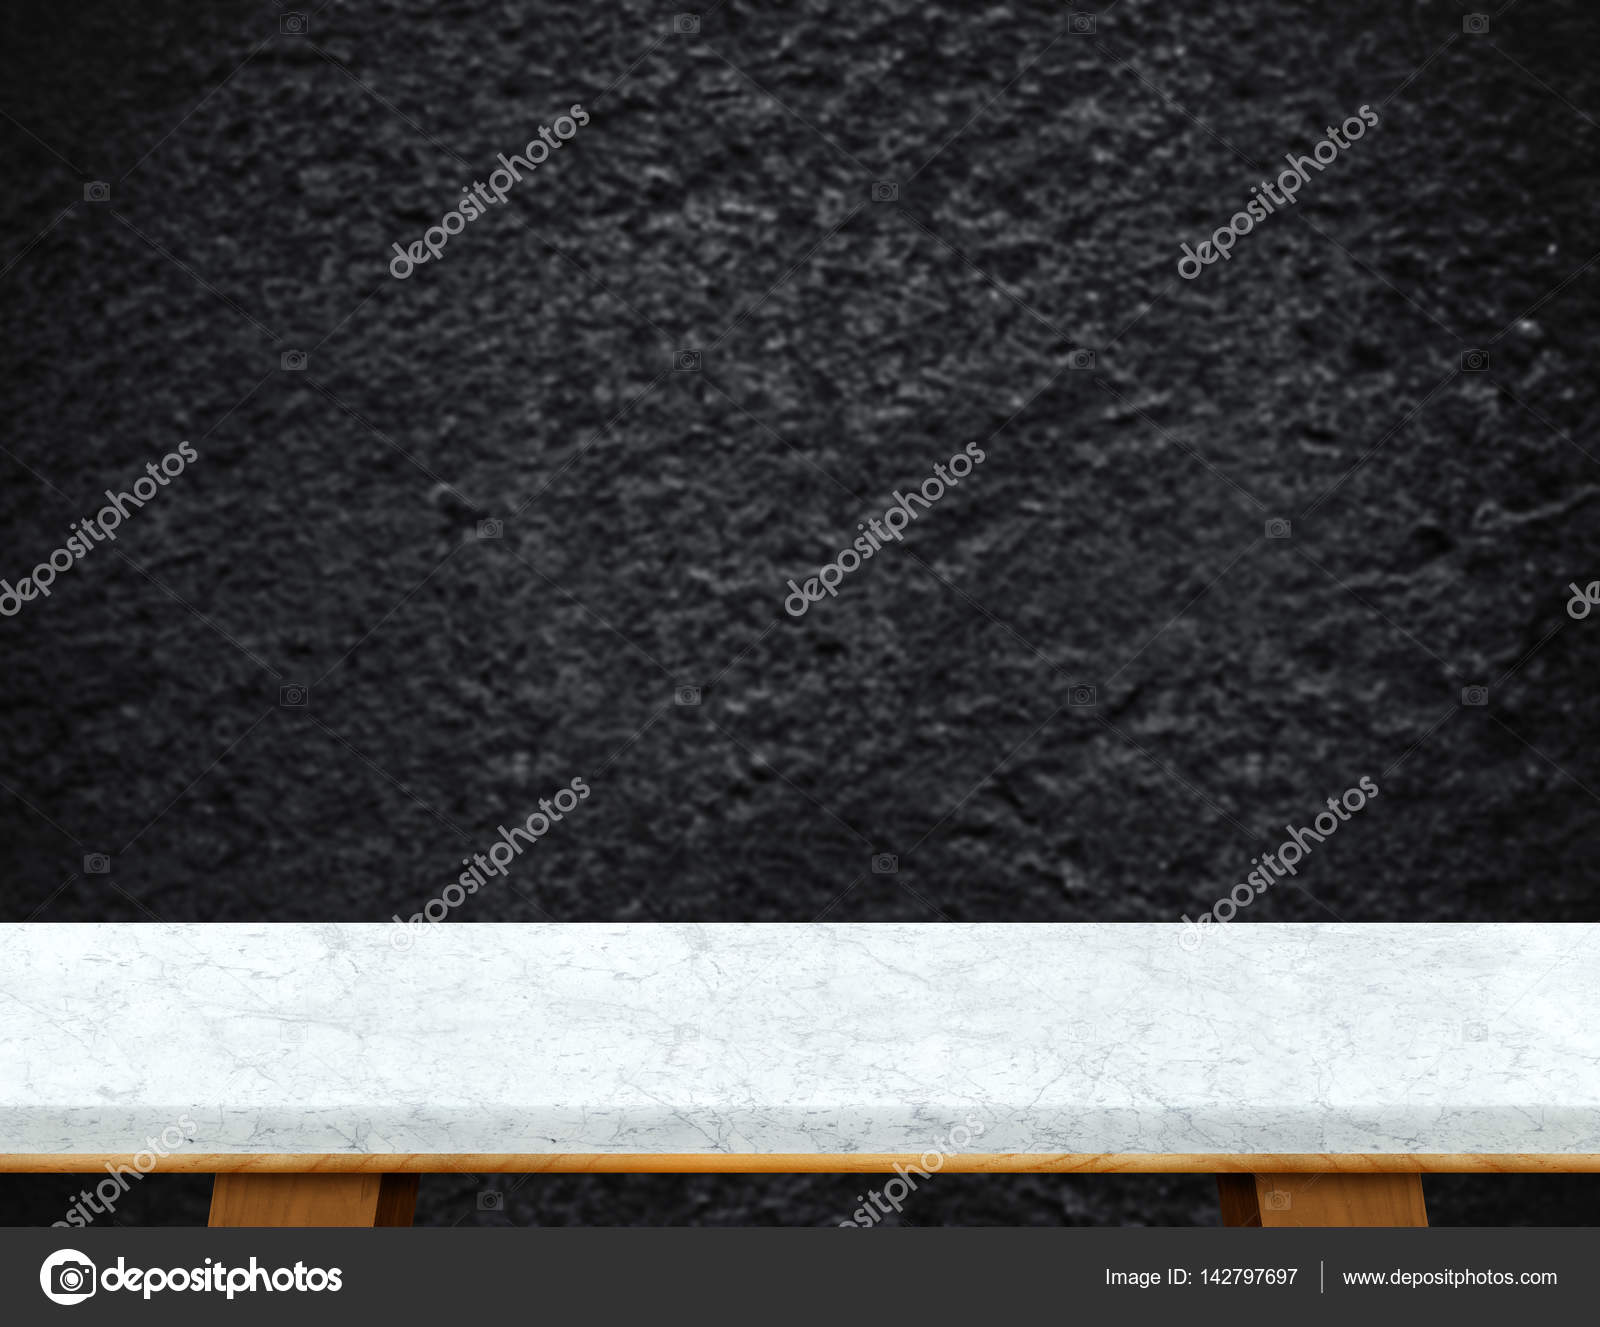 marble table top texture. Empty White Marble Table Top With Blurred Black Rough Stone Wall \u2014 Stock Photo Texture